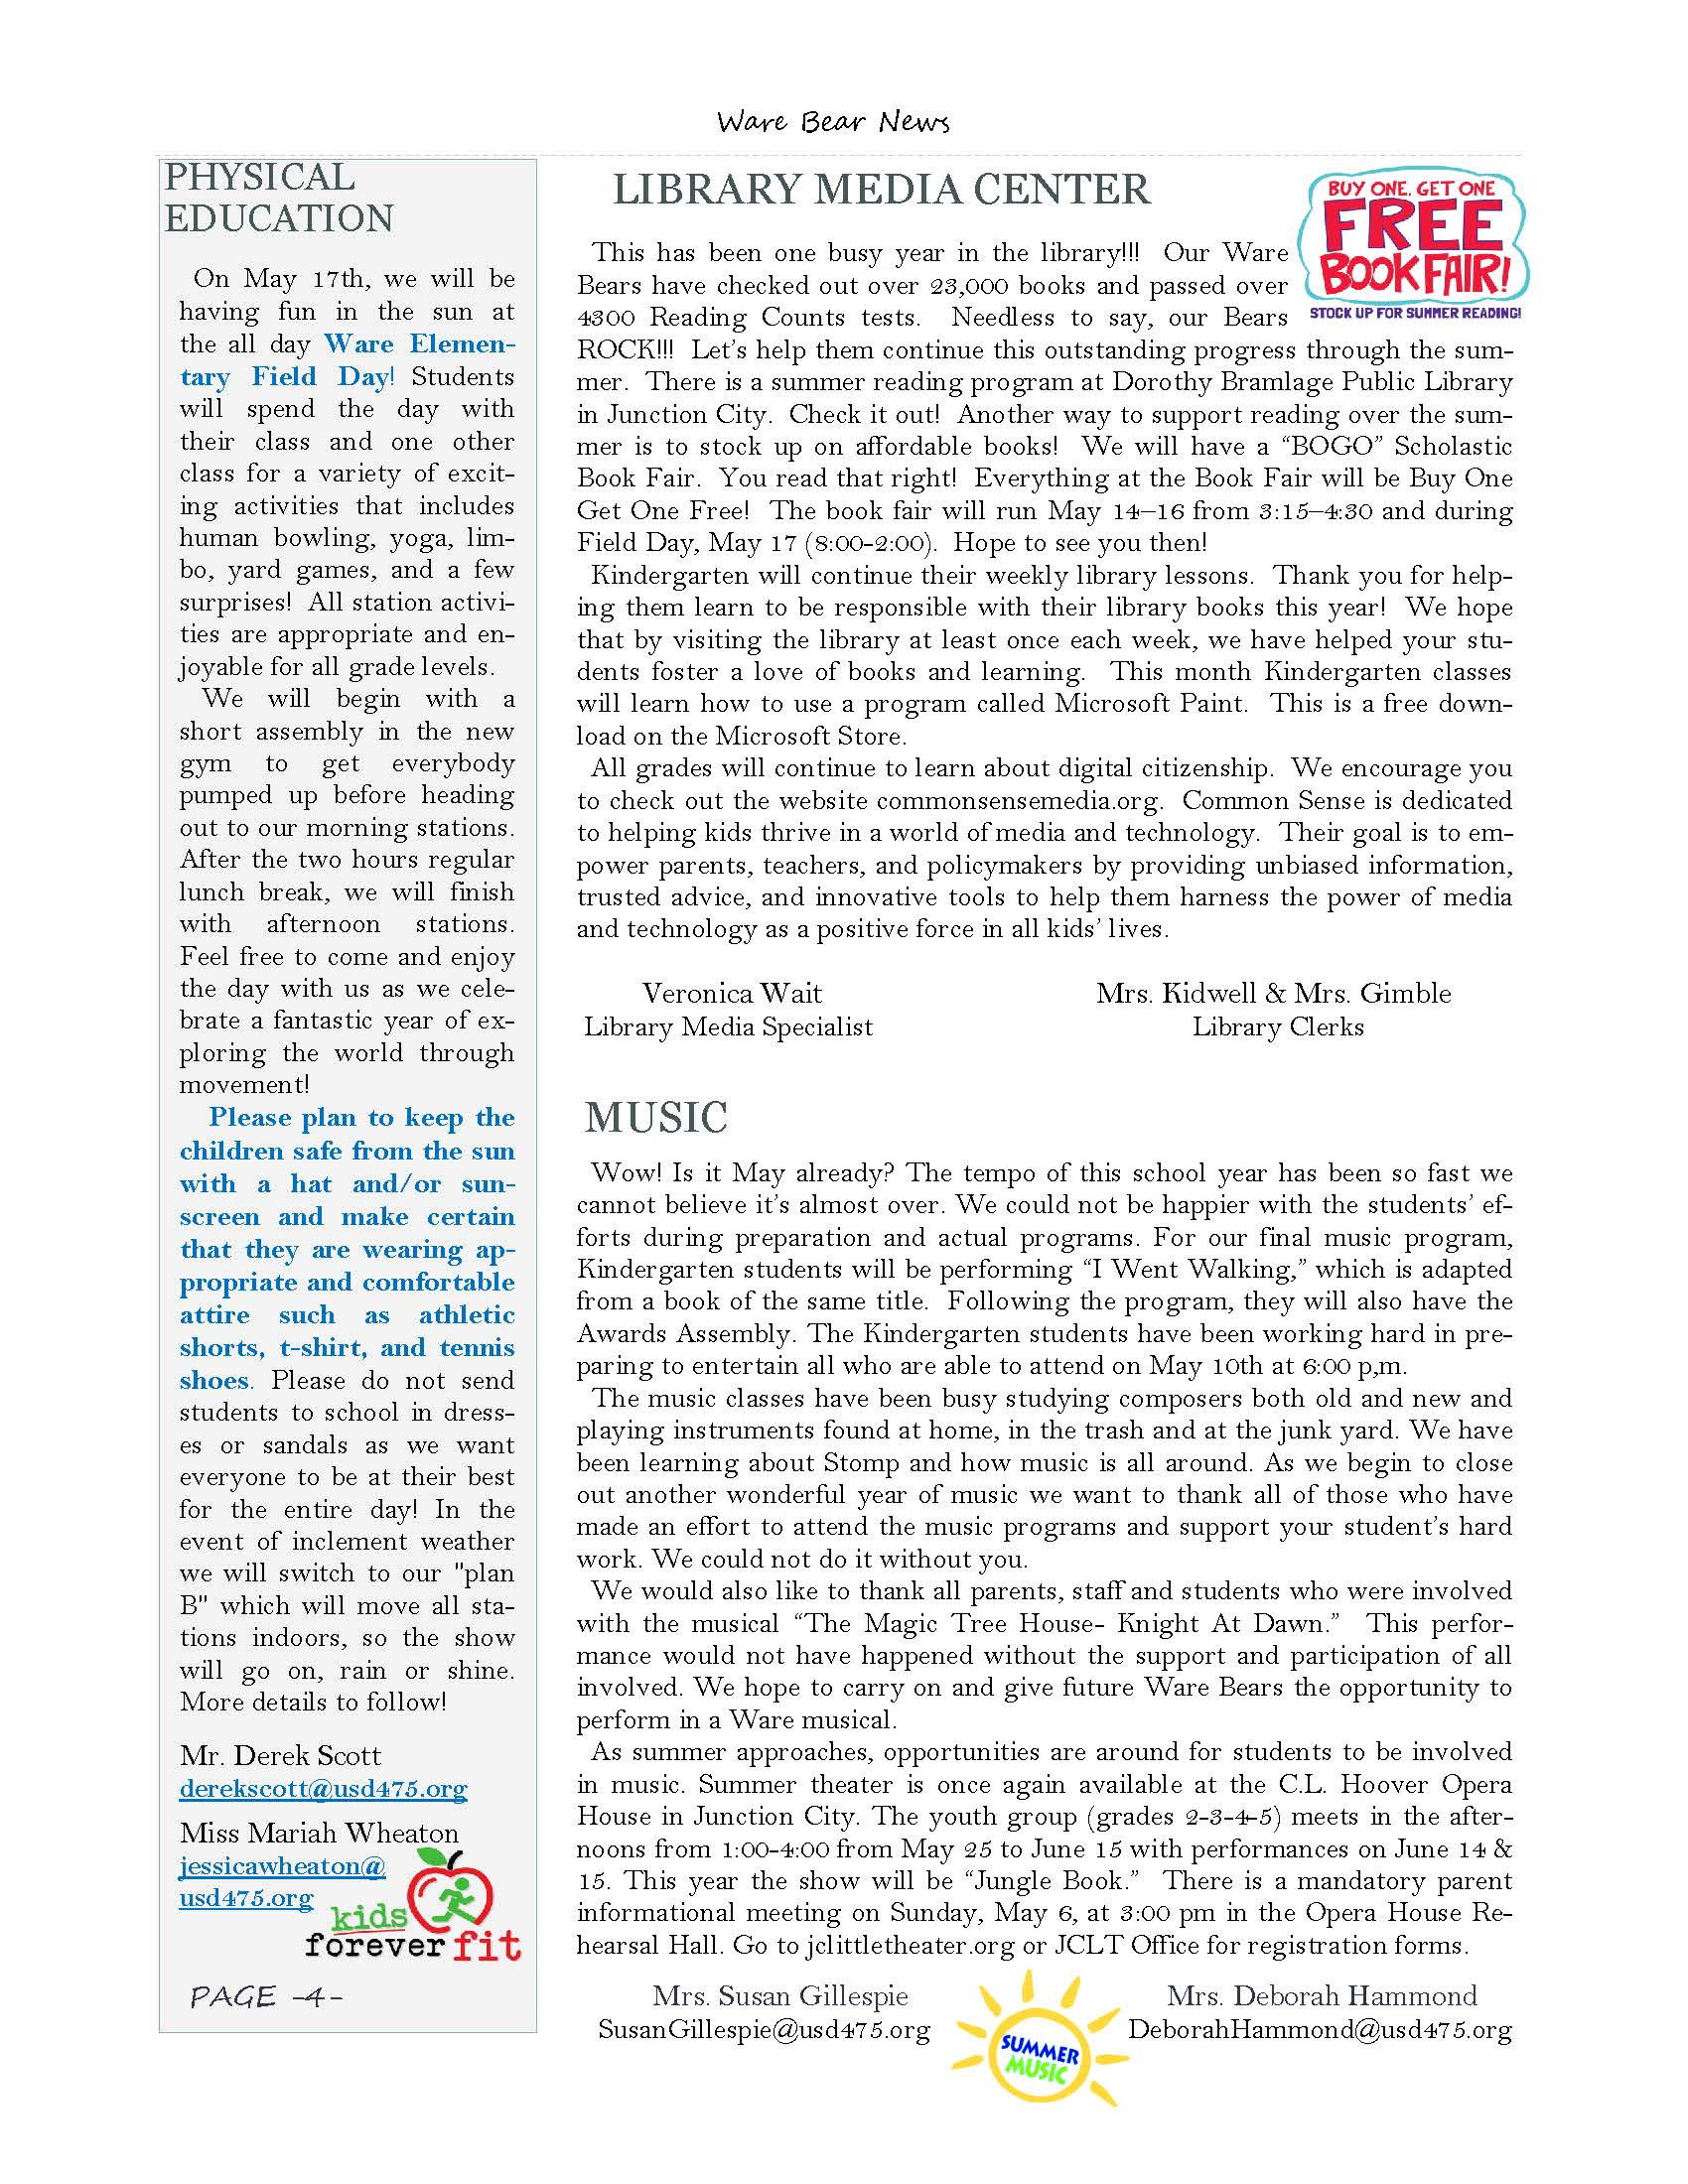 May eNewsletter Page 4